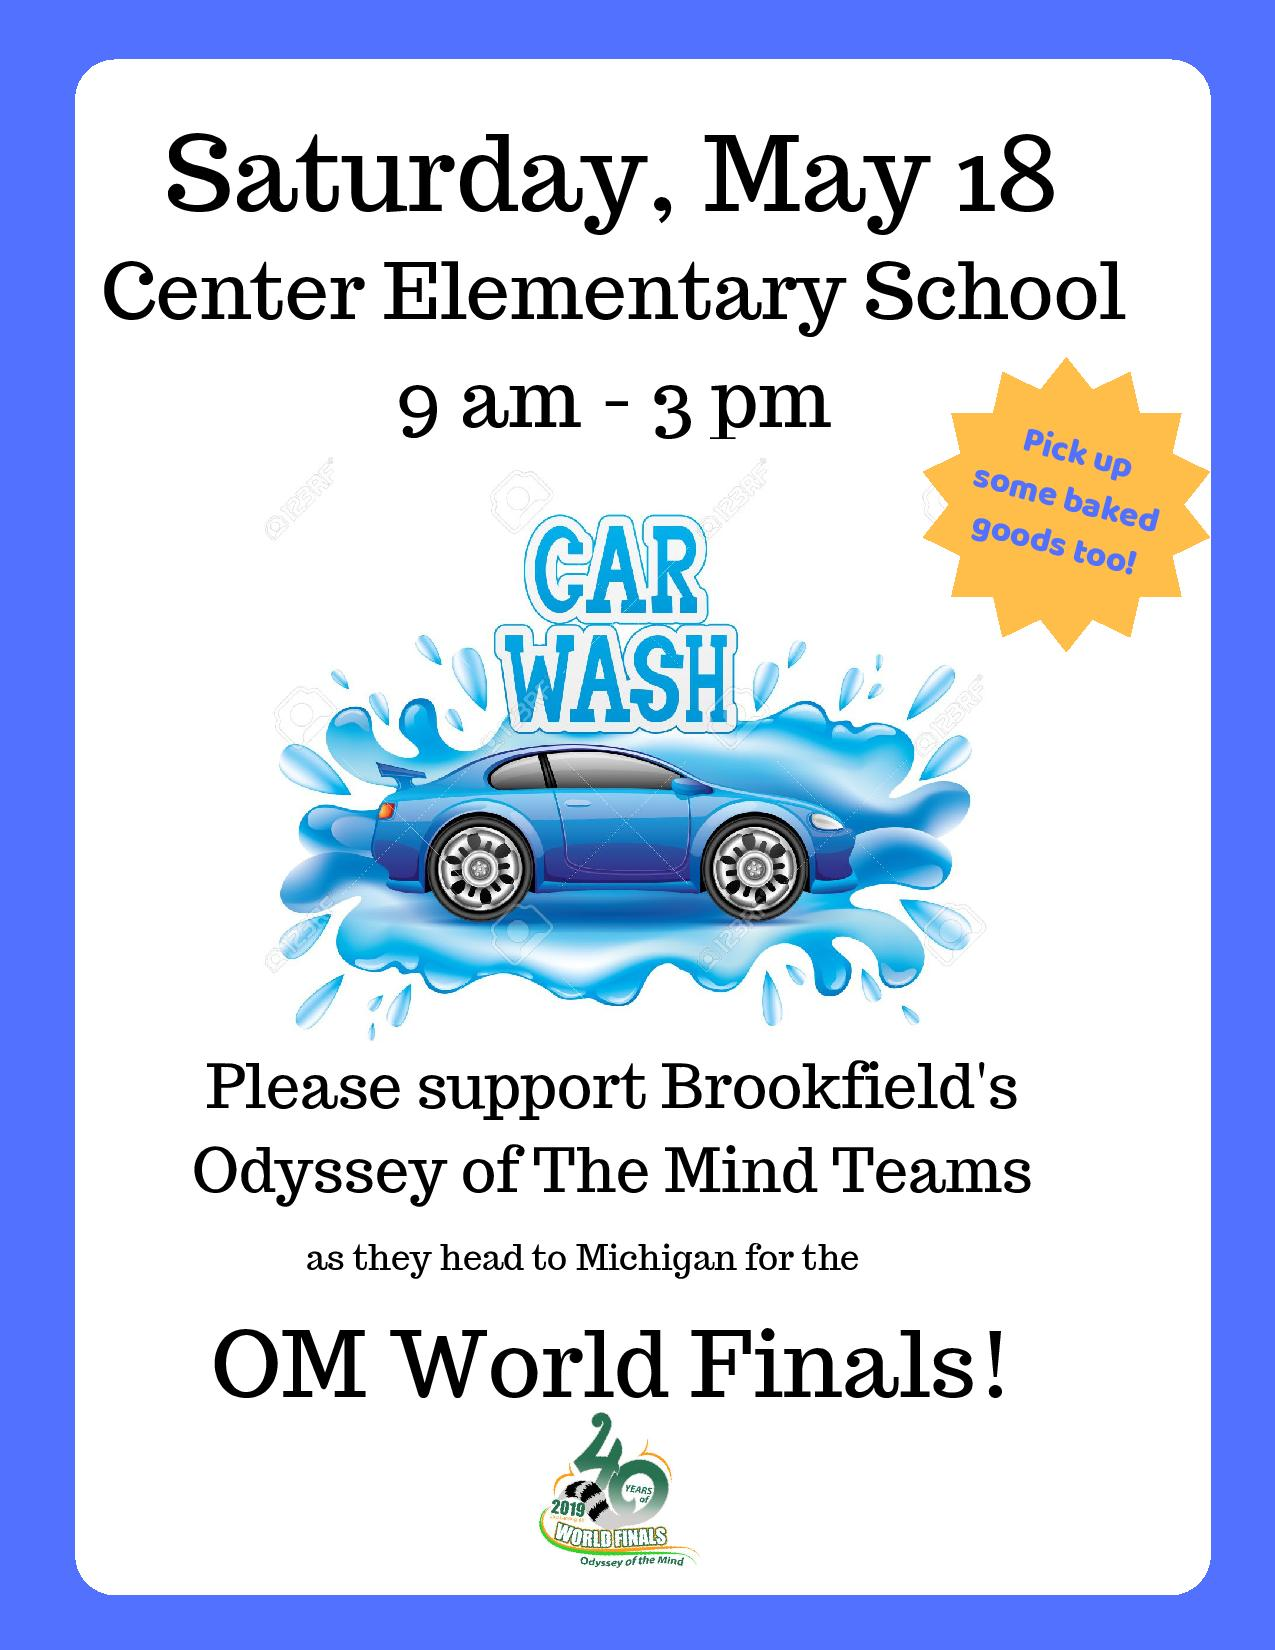 Car Wash Odyssey of the mind Brookfield